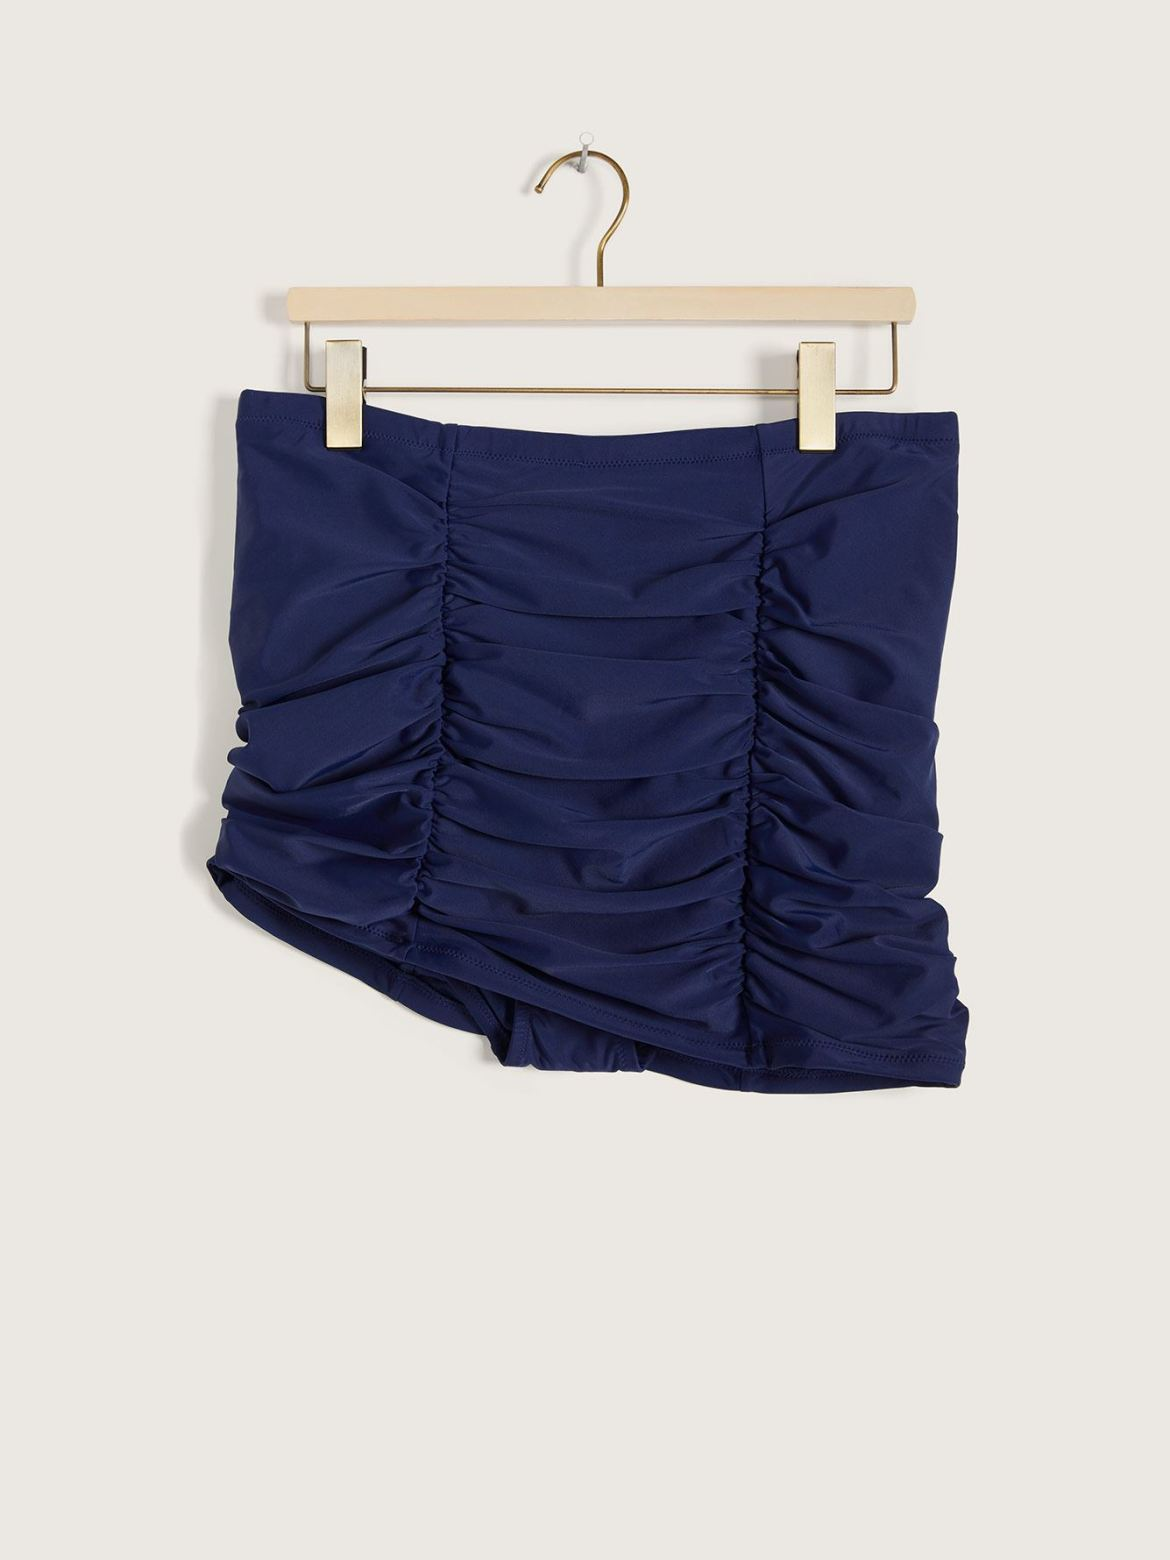 Costa Caribe High Waist Swim Skirt - Raisins Curve